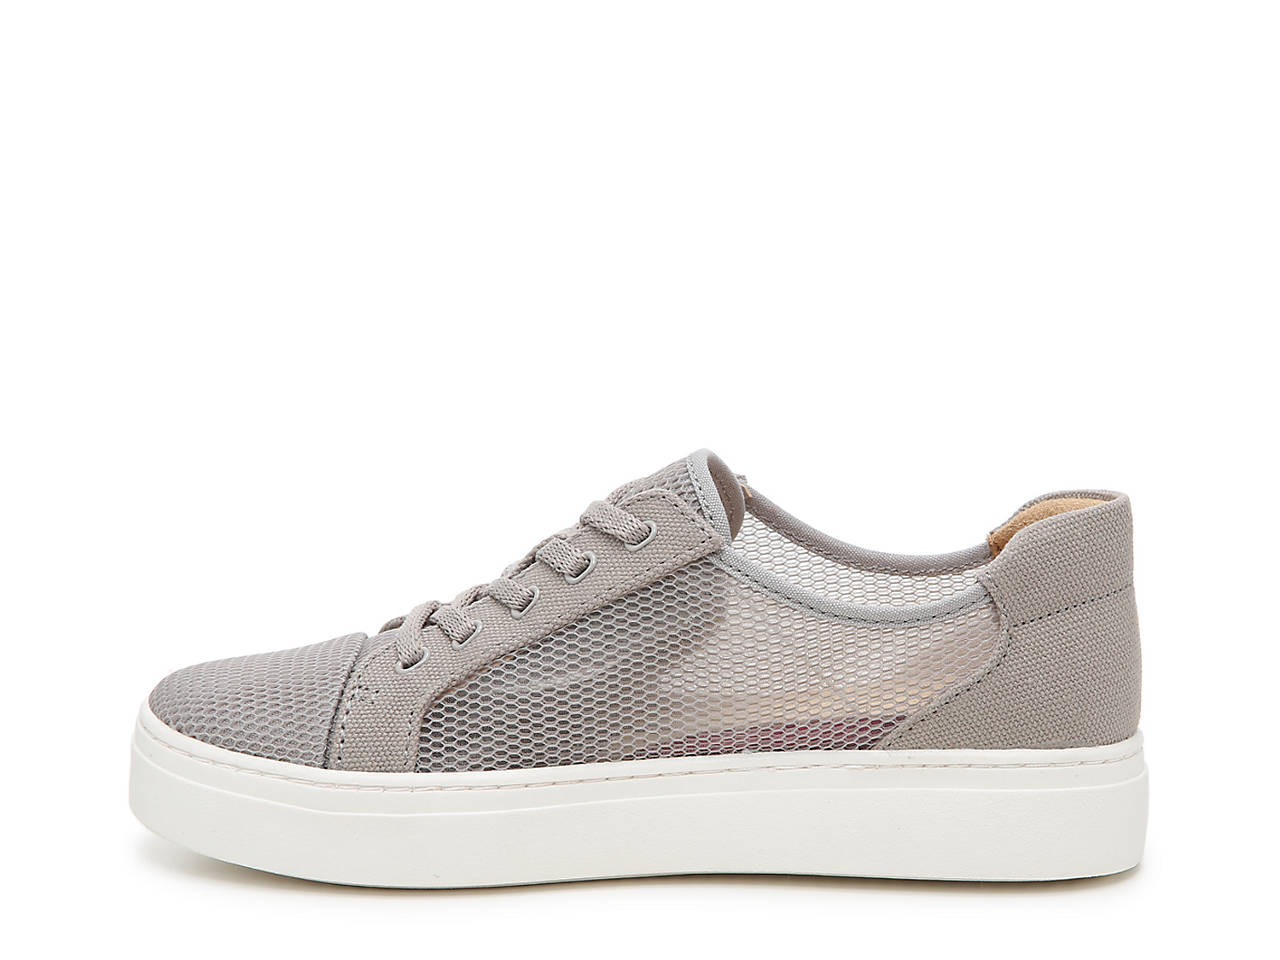 Tanner Sneaker by Naturalizer